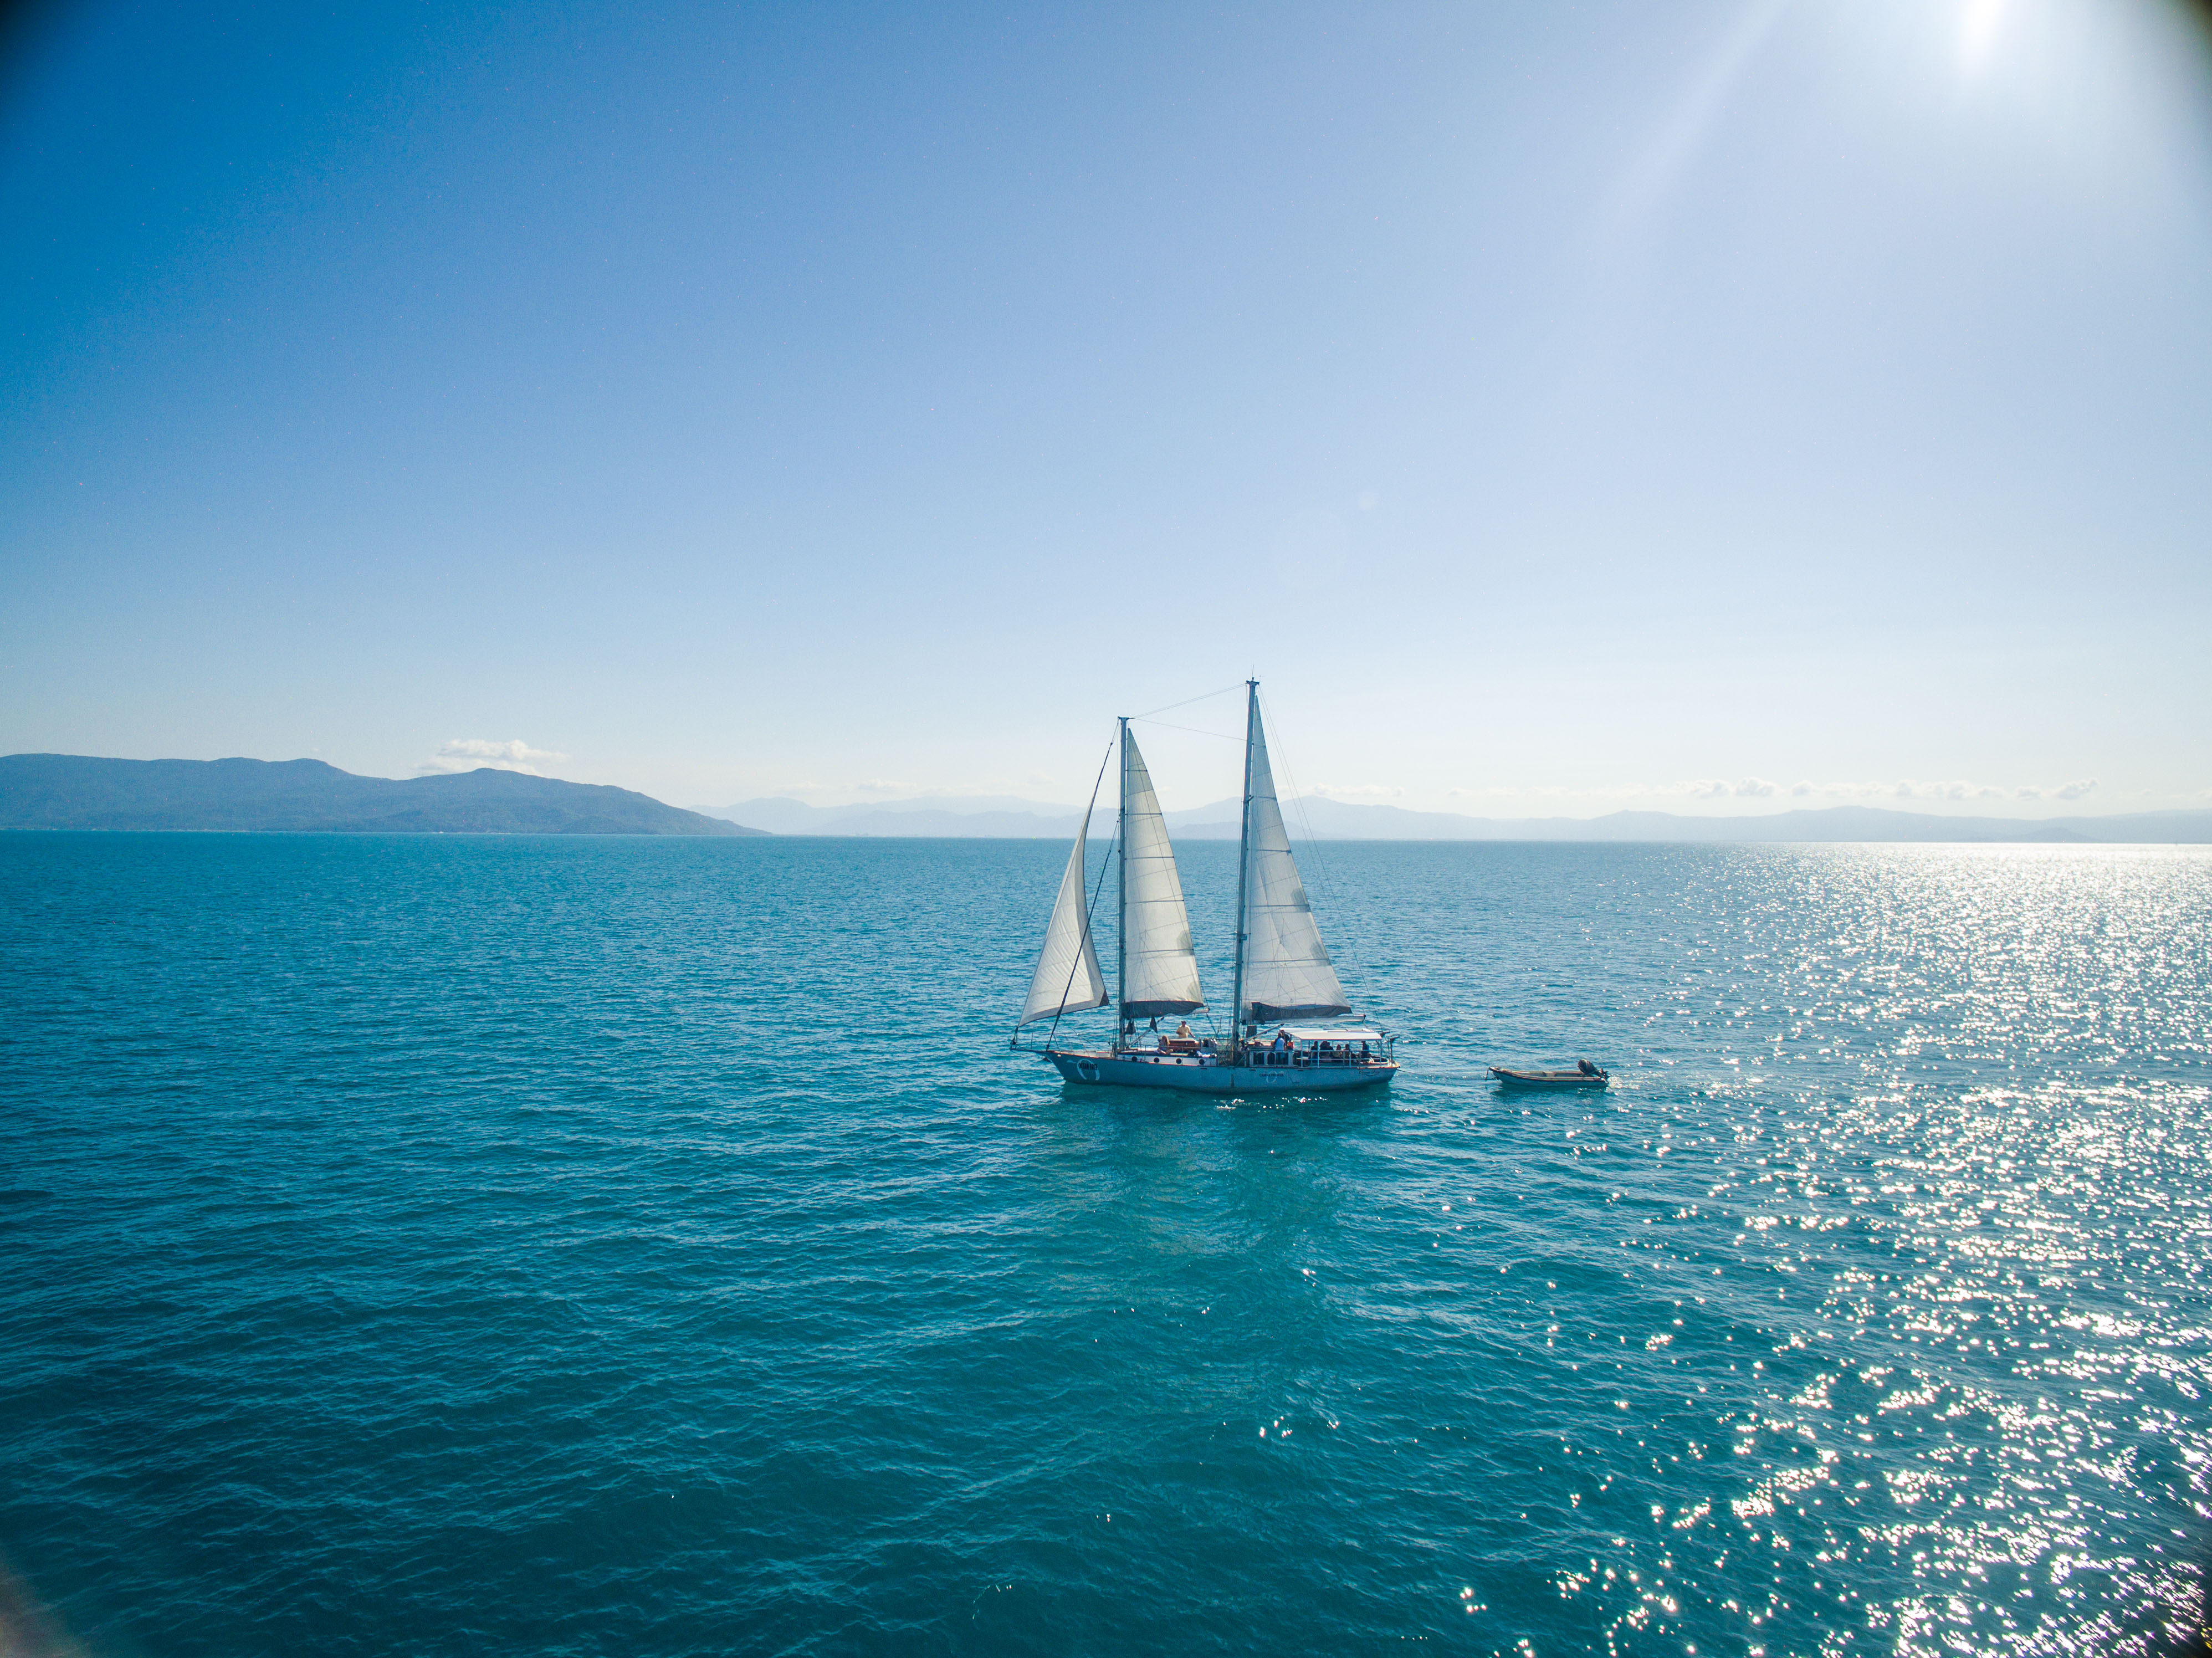 Ocean Free is a 16.5 metre sailing schooner. Check in at Reef Fleet Terminal from 7.15am at Ocean Free + Ocean Freedom desk. Board from 7.30am A Finger No. 4 at the Marlin Marina, Cairns for an 8am departure – coffee, tea and Danish pastries and fresh fruit served on boarding.